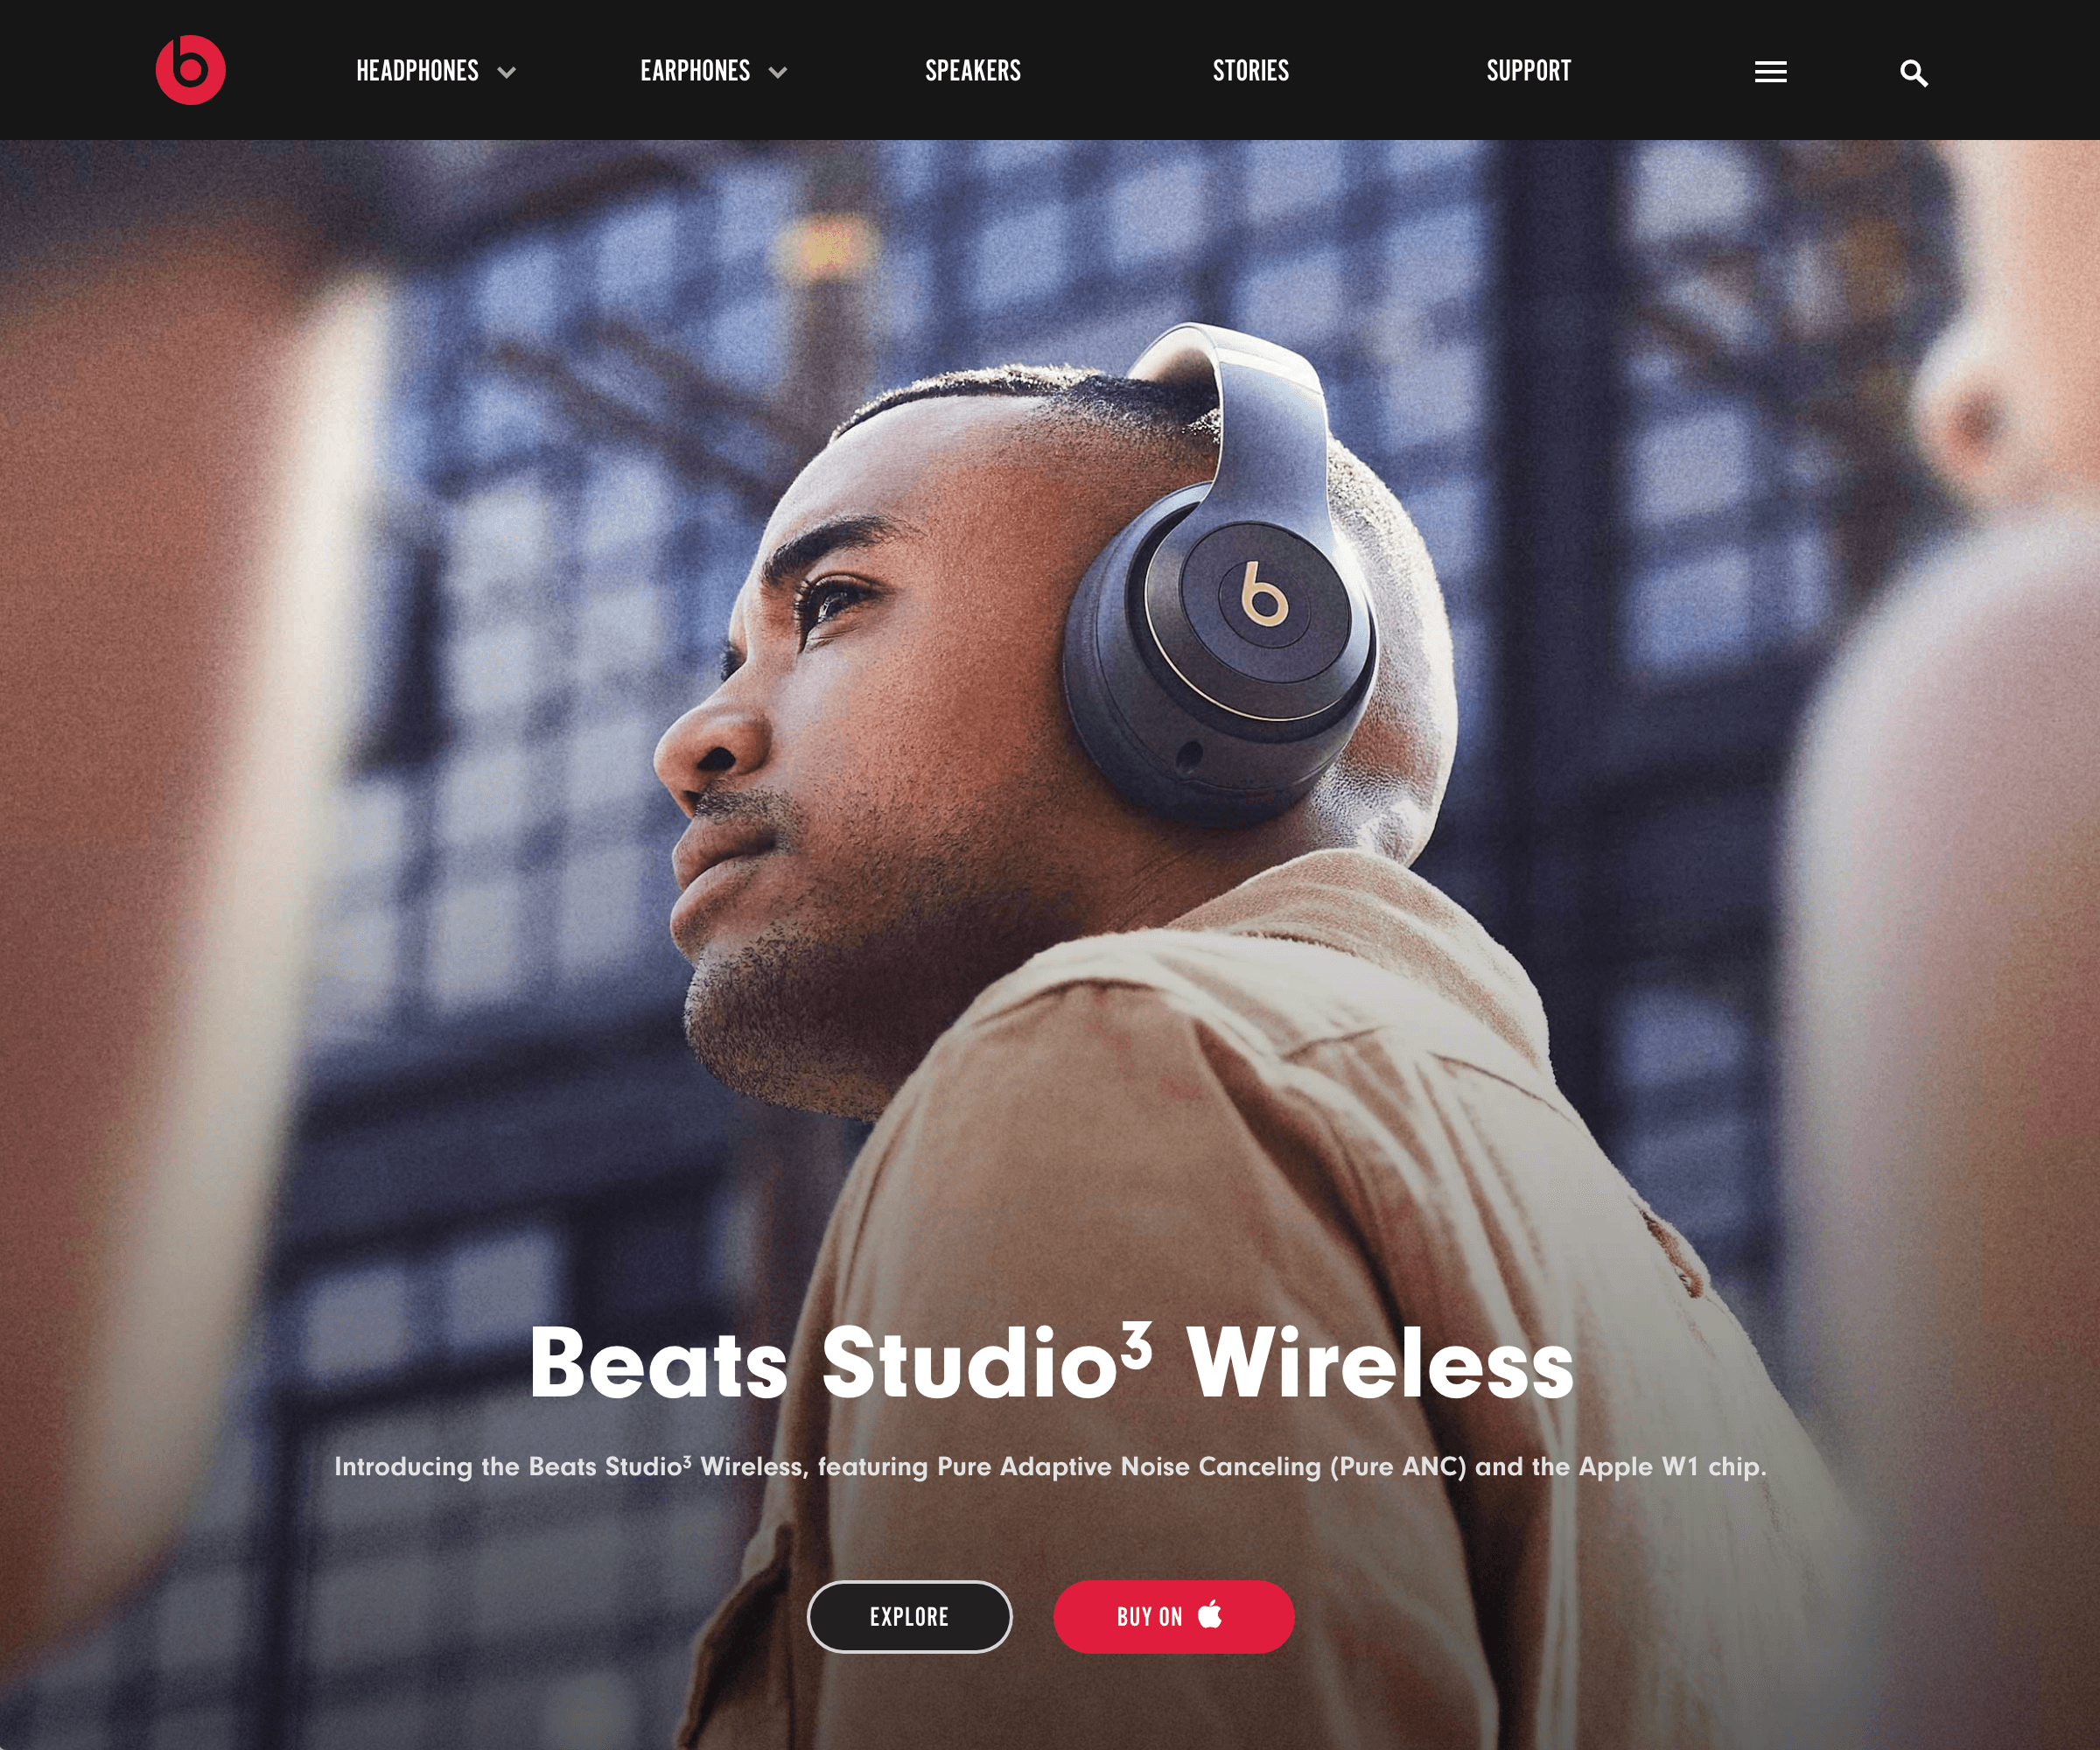 Screenshot of the Beats by Dre website